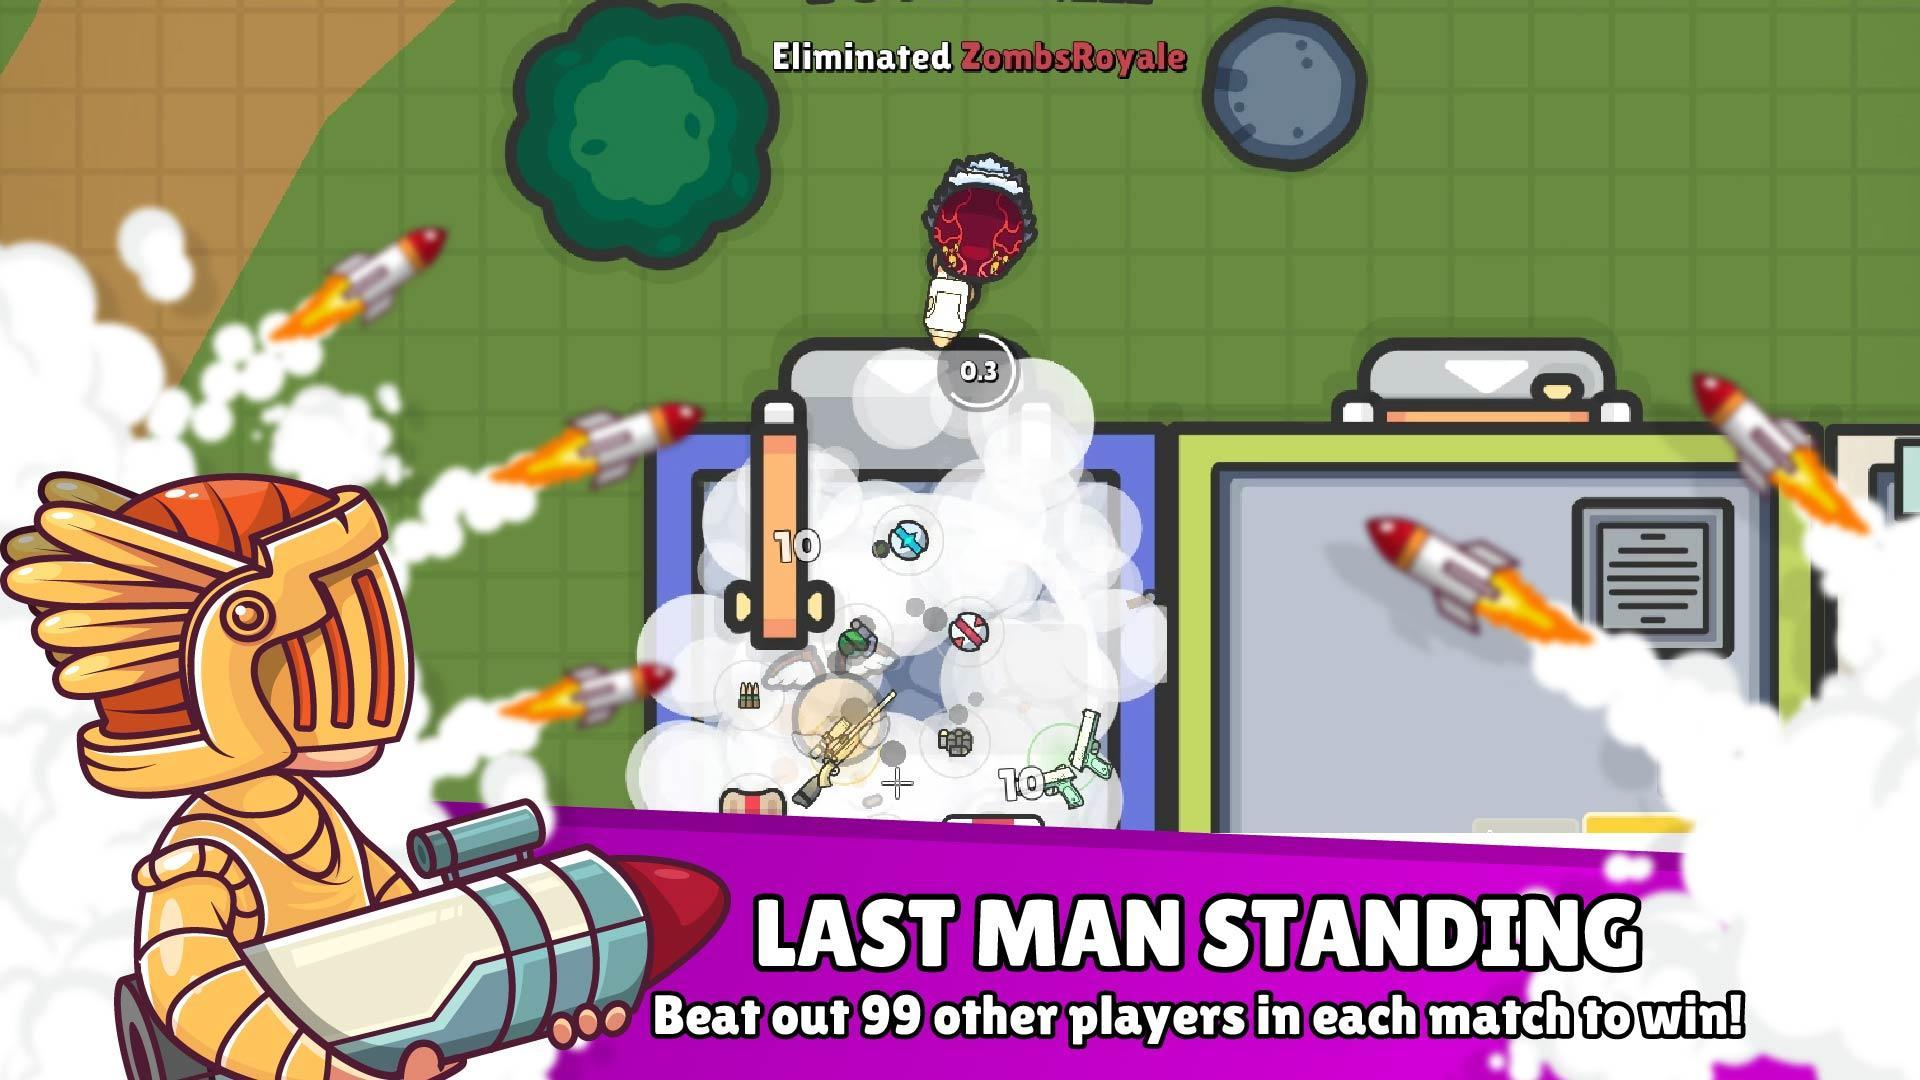 ZombsRoyale io - 2D Battle Royale for Android - APK Download